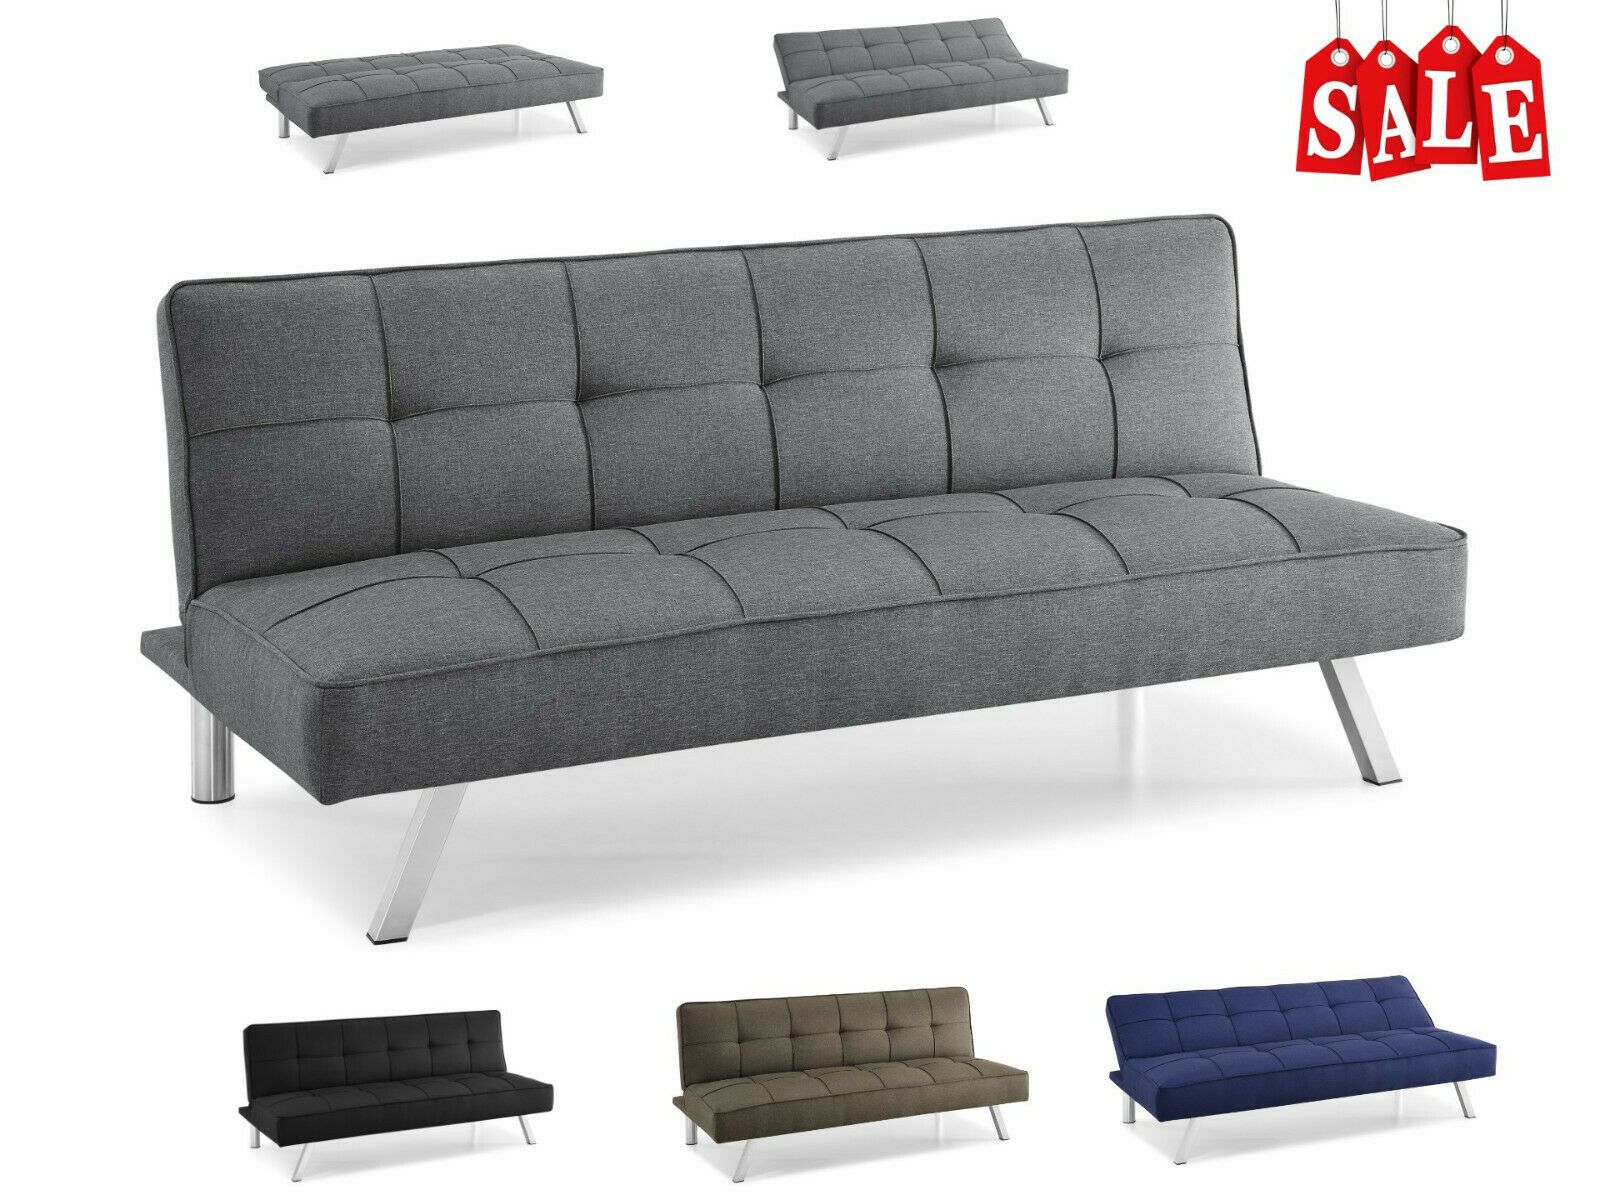 Modern Loveseat Futon Sofa Bed Sleeper Convertible Recliner Tufted Lounger Twin Grey Sofas Ideas Of Grey Sofas Grey Sofas Modern Loveseat Futon Sofa Be